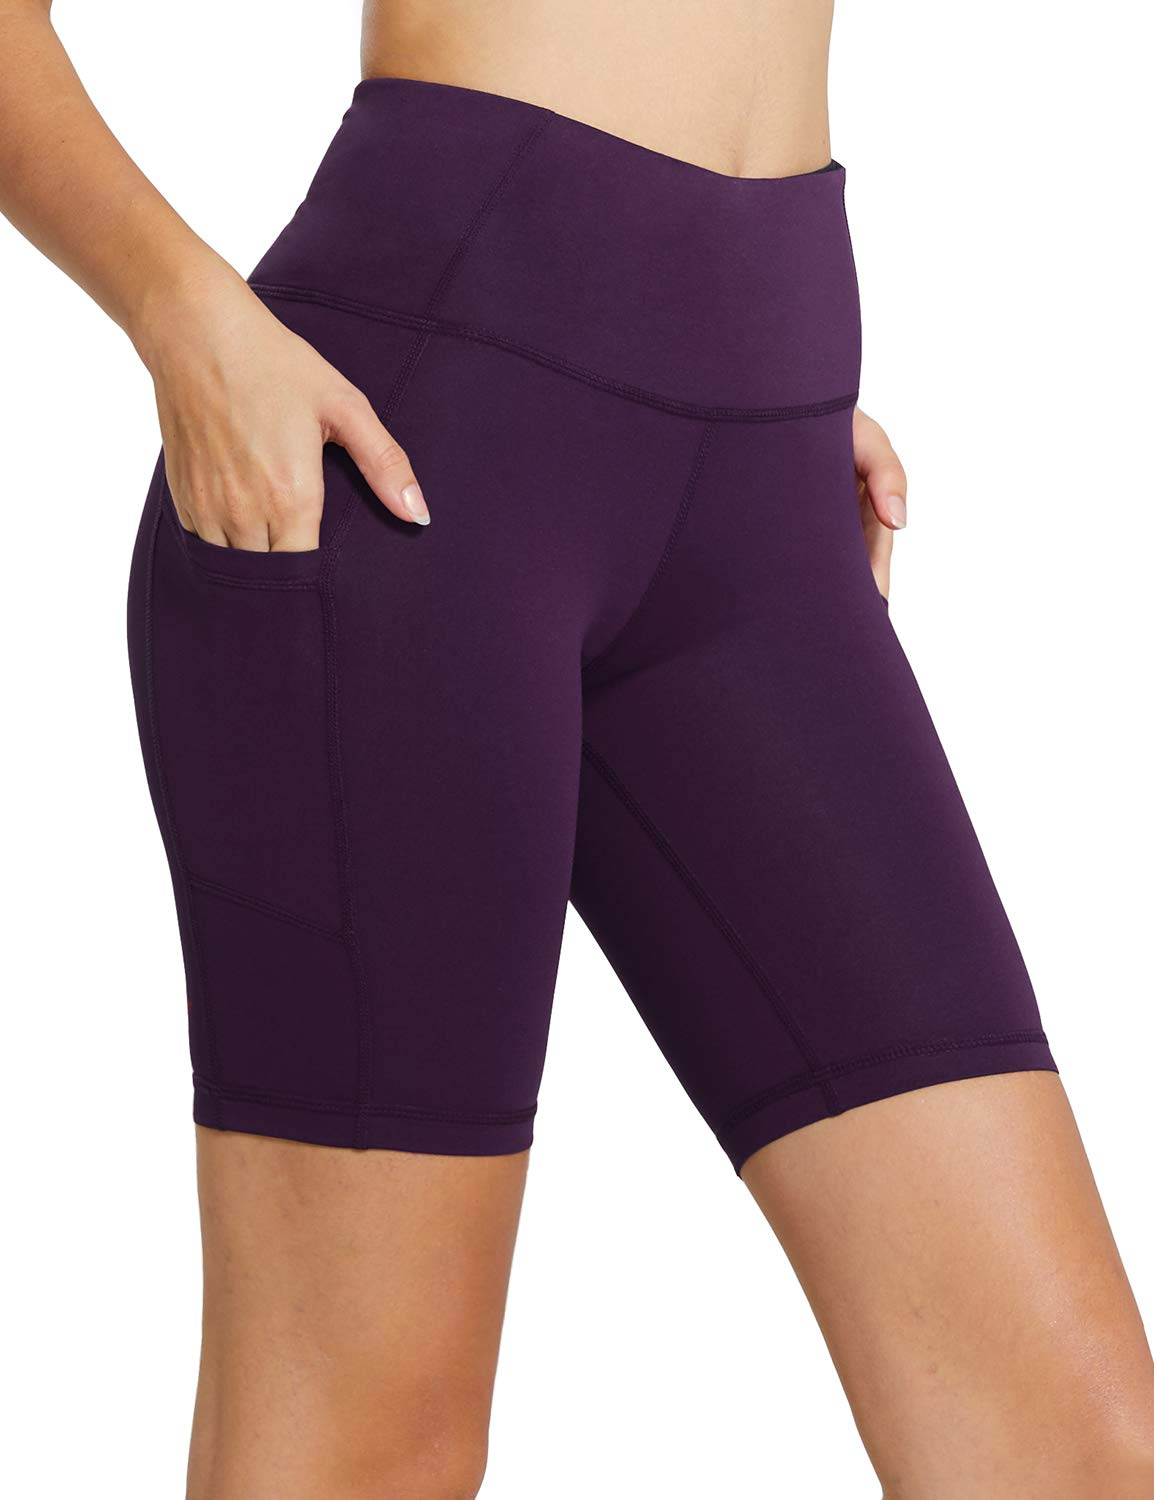 BALEAF Women's 8'' High Waist Tummy Control Workout Yoga Shorts Side Pockets Purple Size L by BALEAF